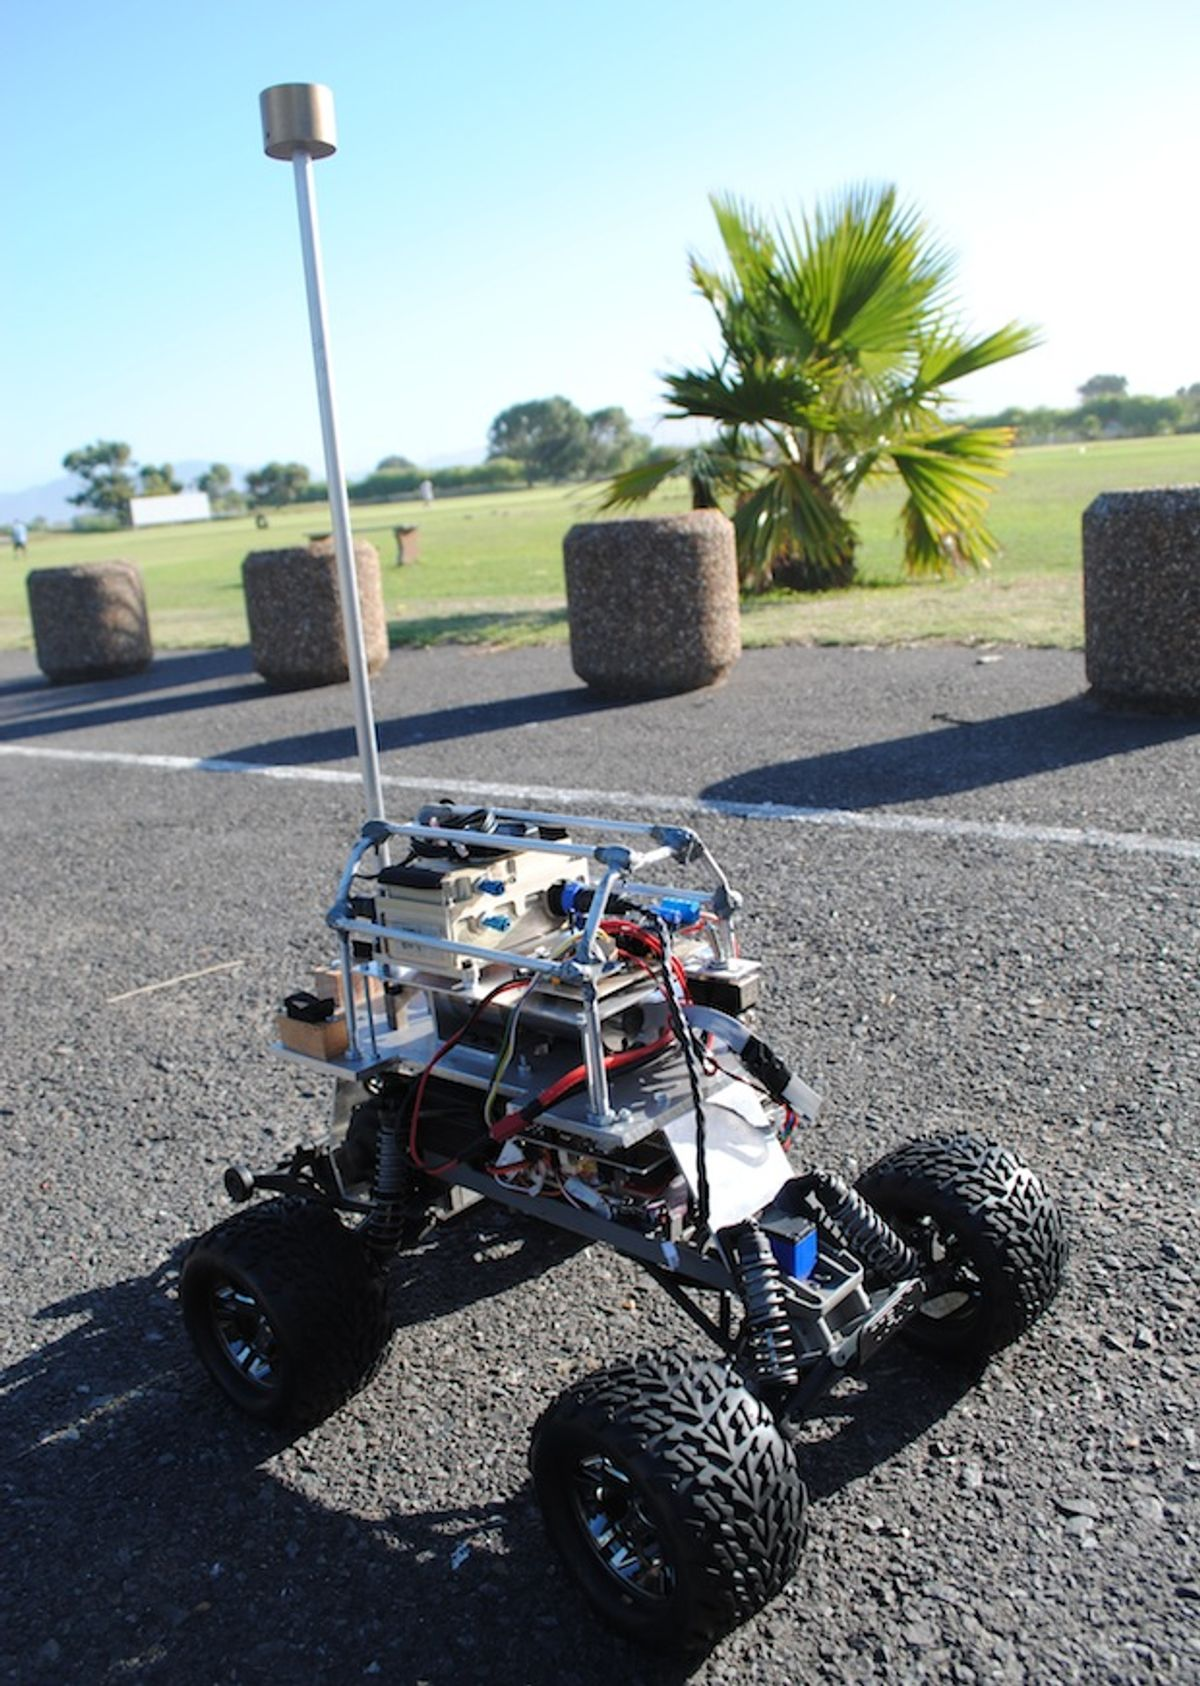 IROS 2013: Robot Cars Get Hyper-Maneuverable With Actuated Tails